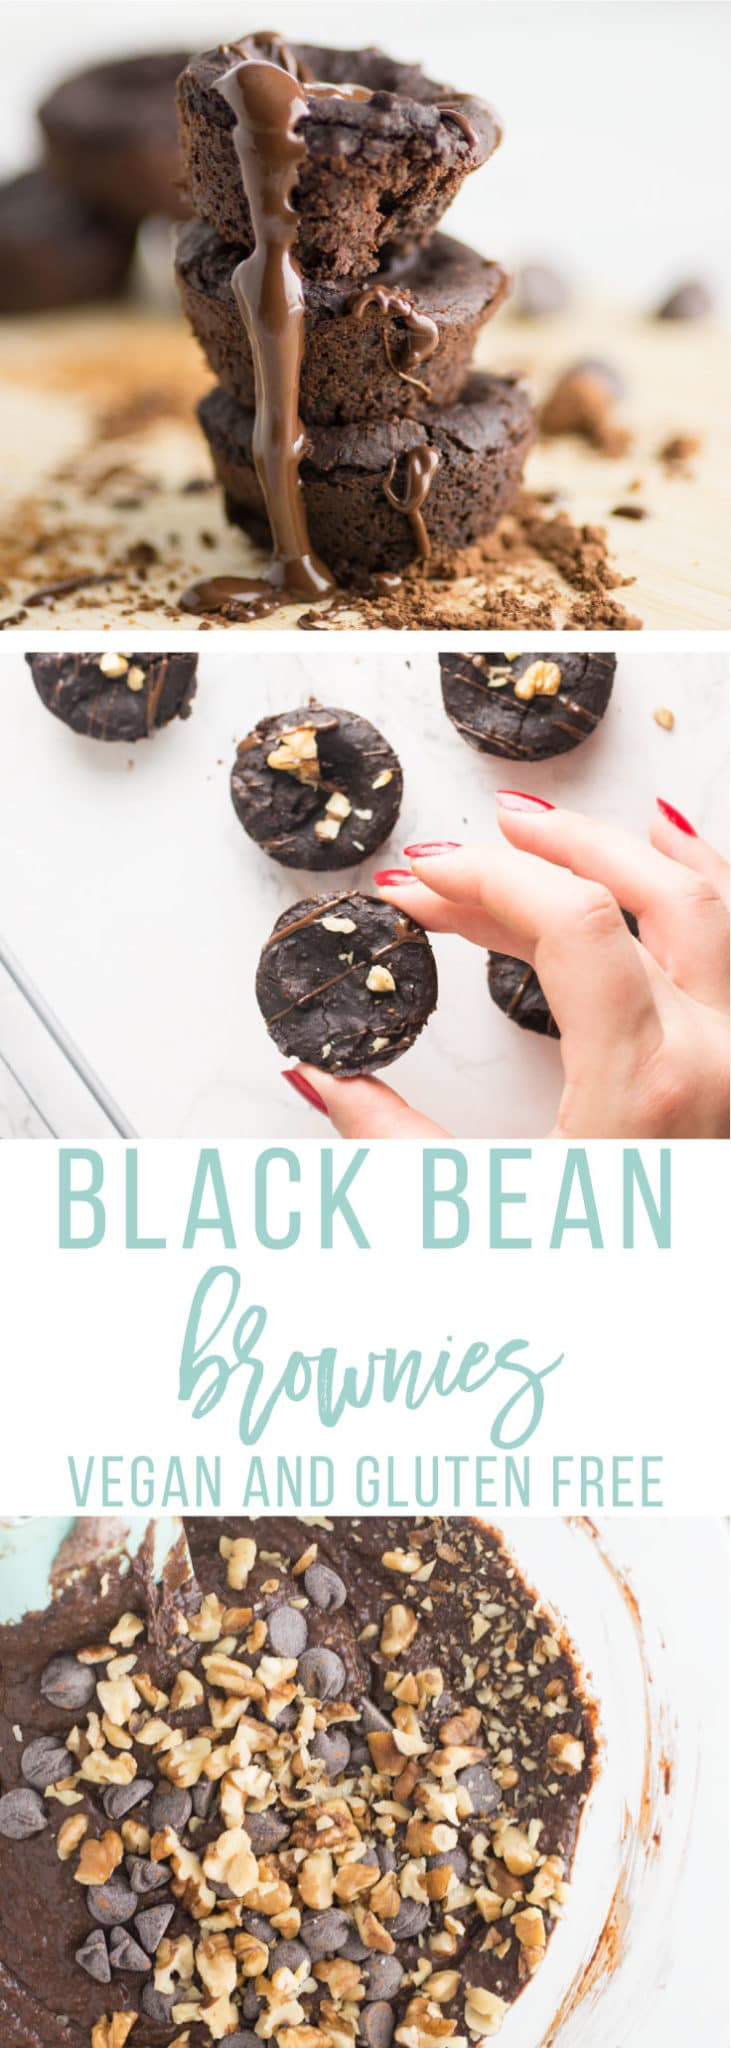 Black Bean Brownies -- Introducing black bean brownies that are a healthy spin on the chocolatey dessert. This brownie recipe is totally gluten free thanks to the black beans. You won't believe these brownies are vegan, gluten free, AND refined sugar free because these bite sized brownies are so fudgy, chocolatey, and decadent! | mindfulavocado